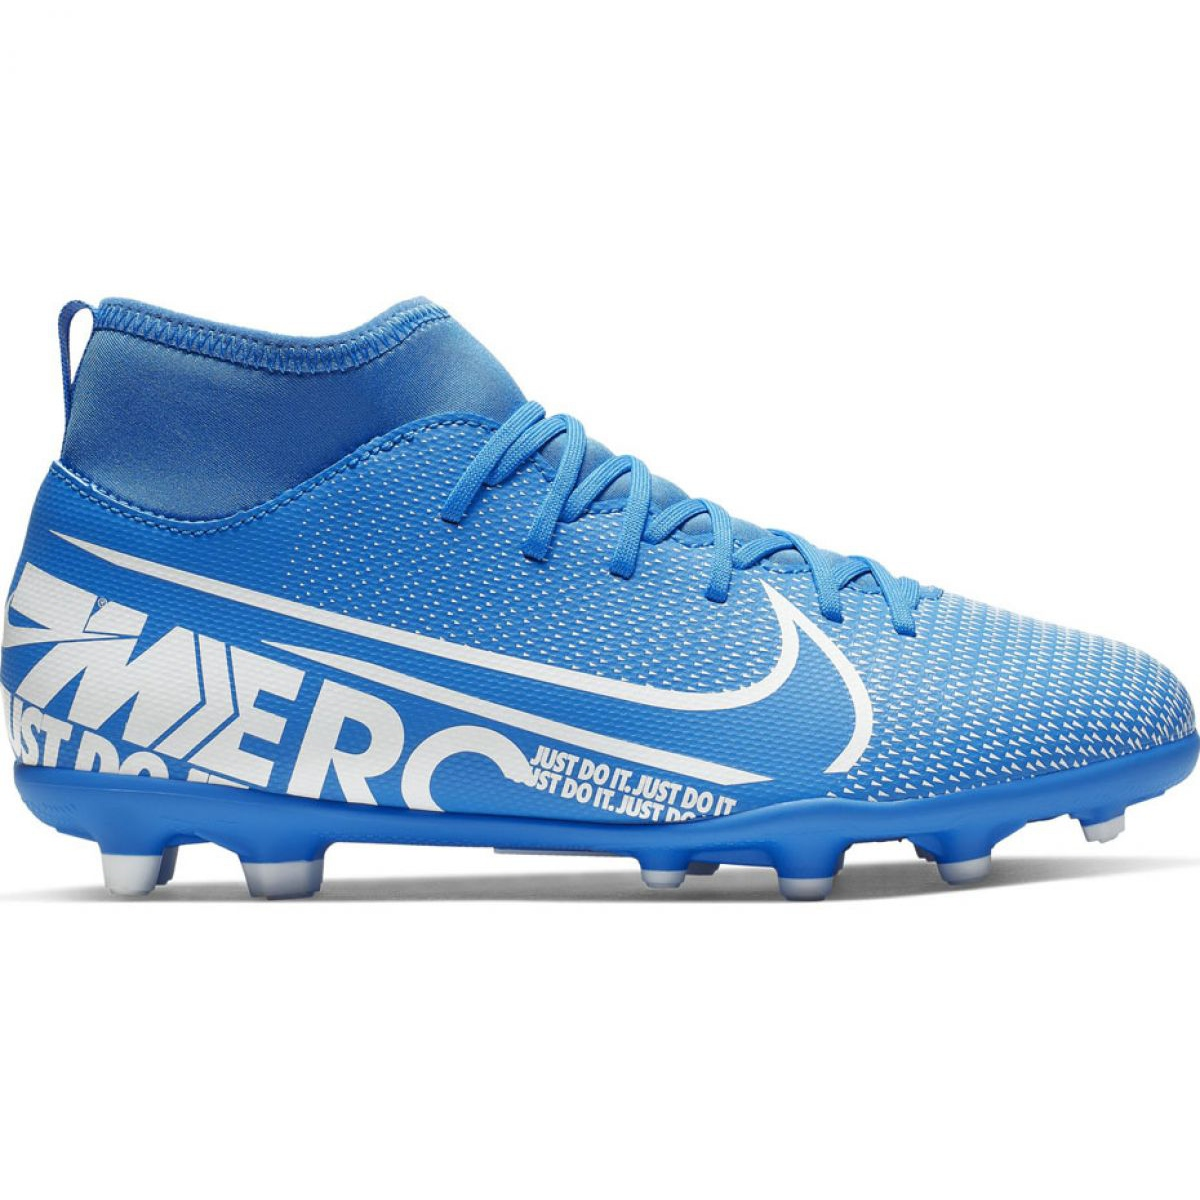 Fussballschuhe Nike Mercurial Superfly 7 Club Fg Mg Jr At8150 414 Blau Blau